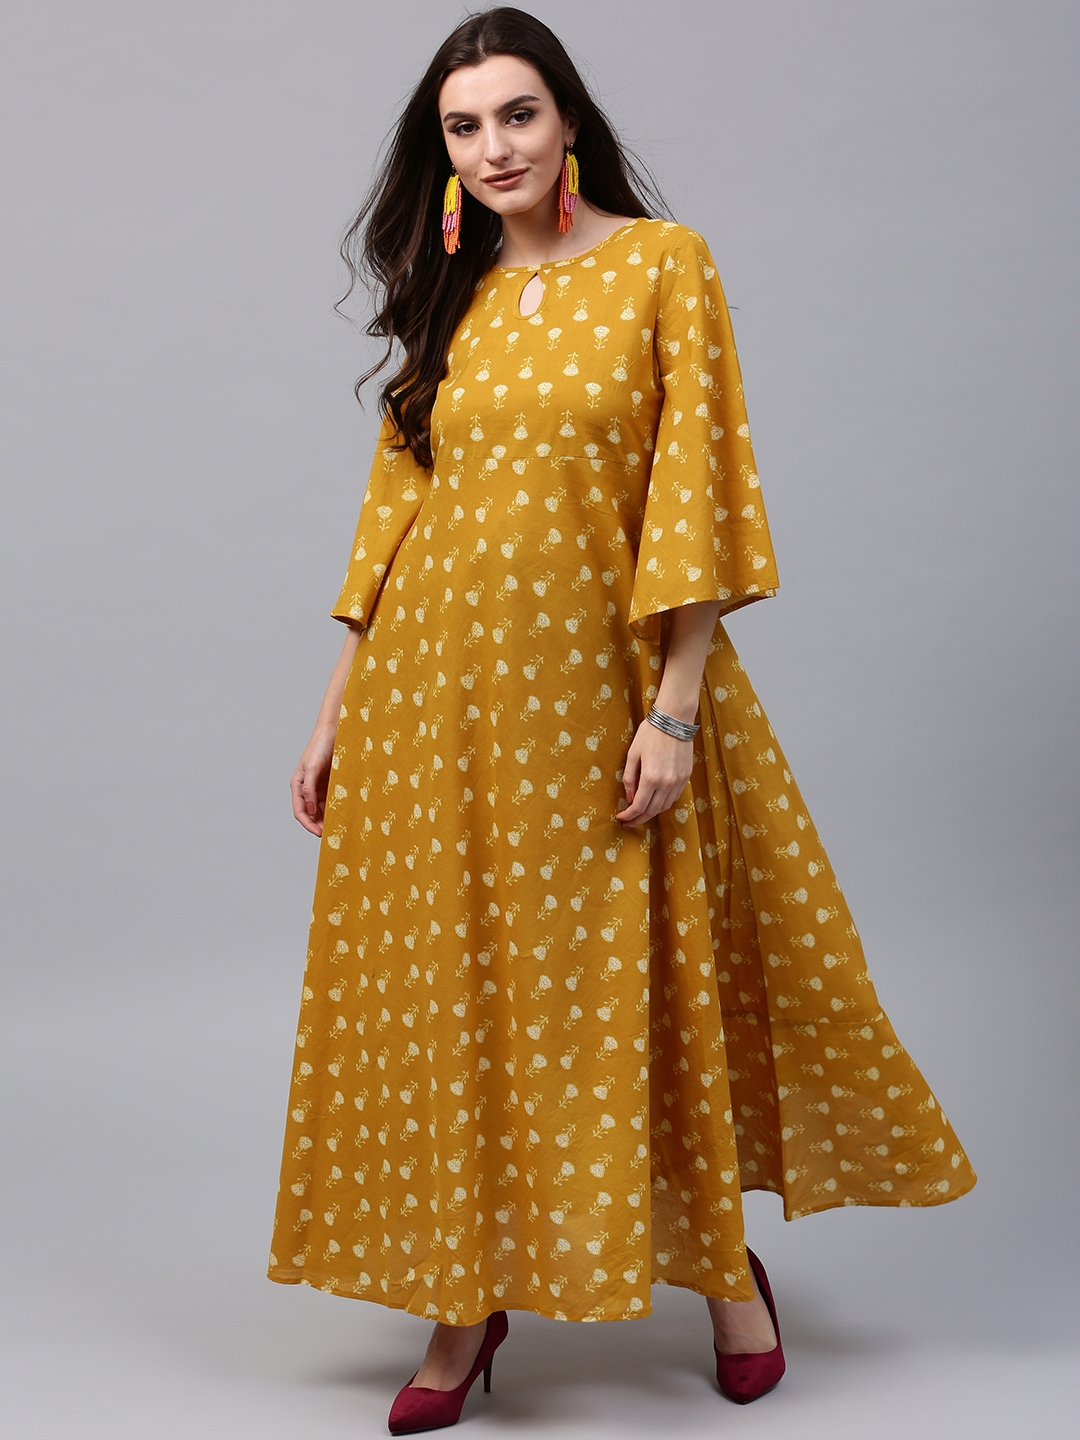 b8bfcc414a0 Buy AKS Women Mustard Yellow Printed Maxi Dress - Dresses for Women ...